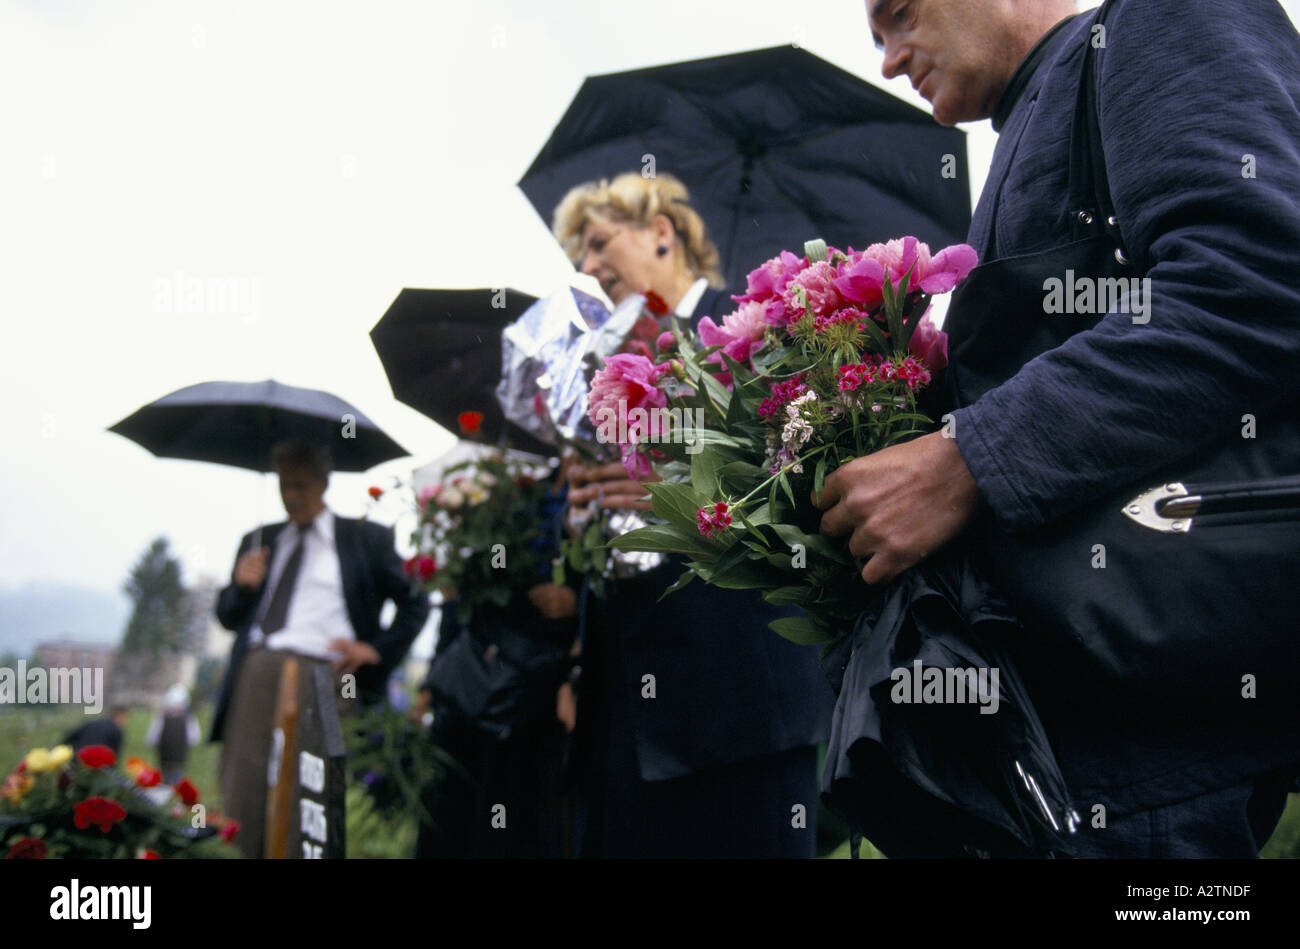 Sarajevo June 1995 Mourners In Black With Flowers At A Funeral Stock